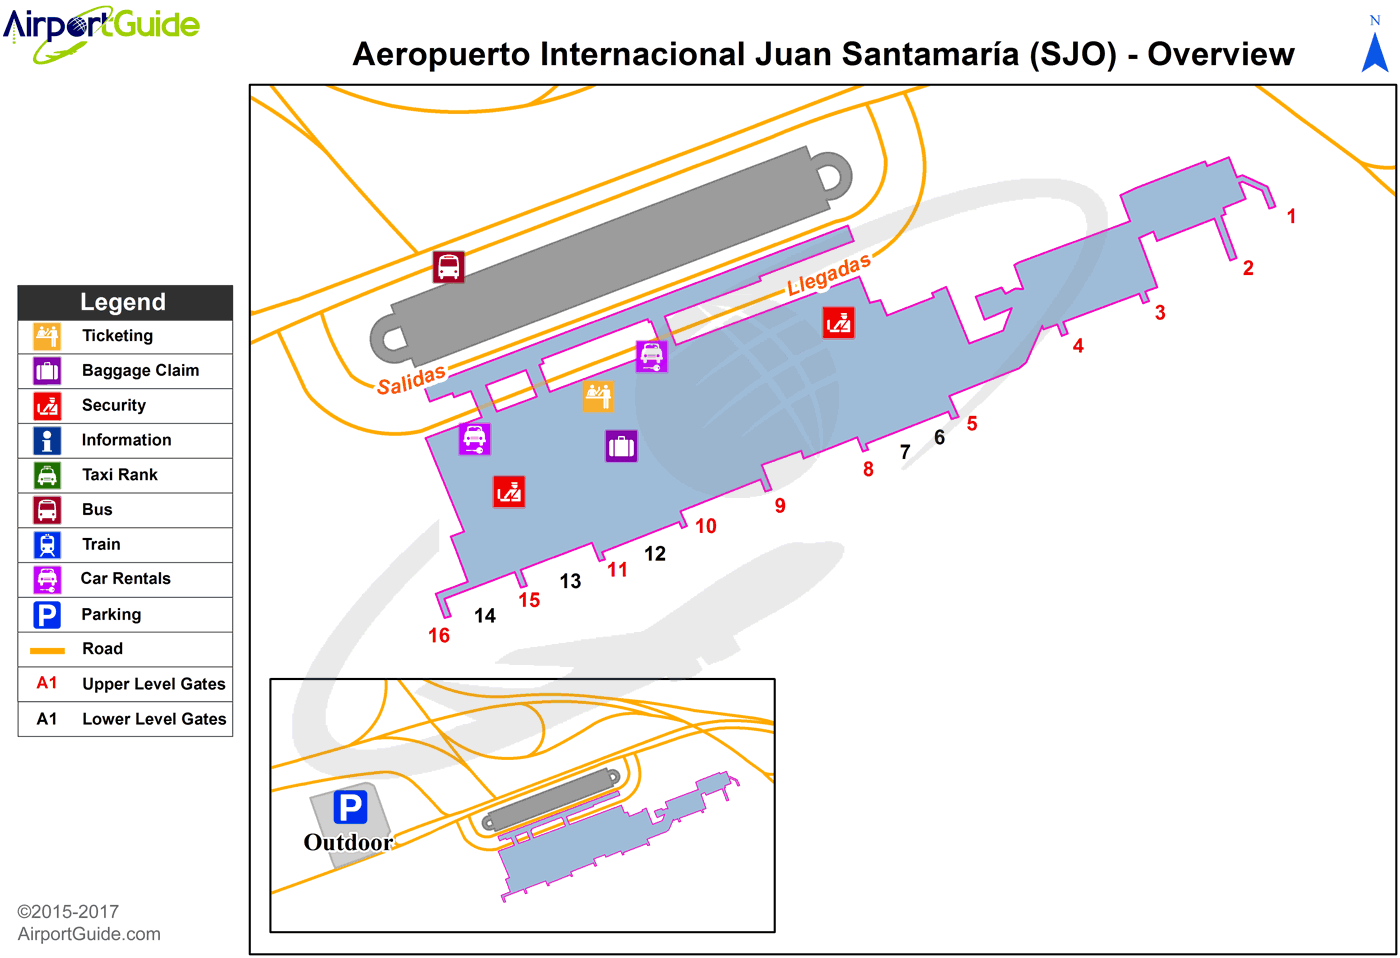 Juan Santamaria Airport Map San Jose   Juan Santamaria International (SJO) Airport Terminal  Juan Santamaria Airport Map